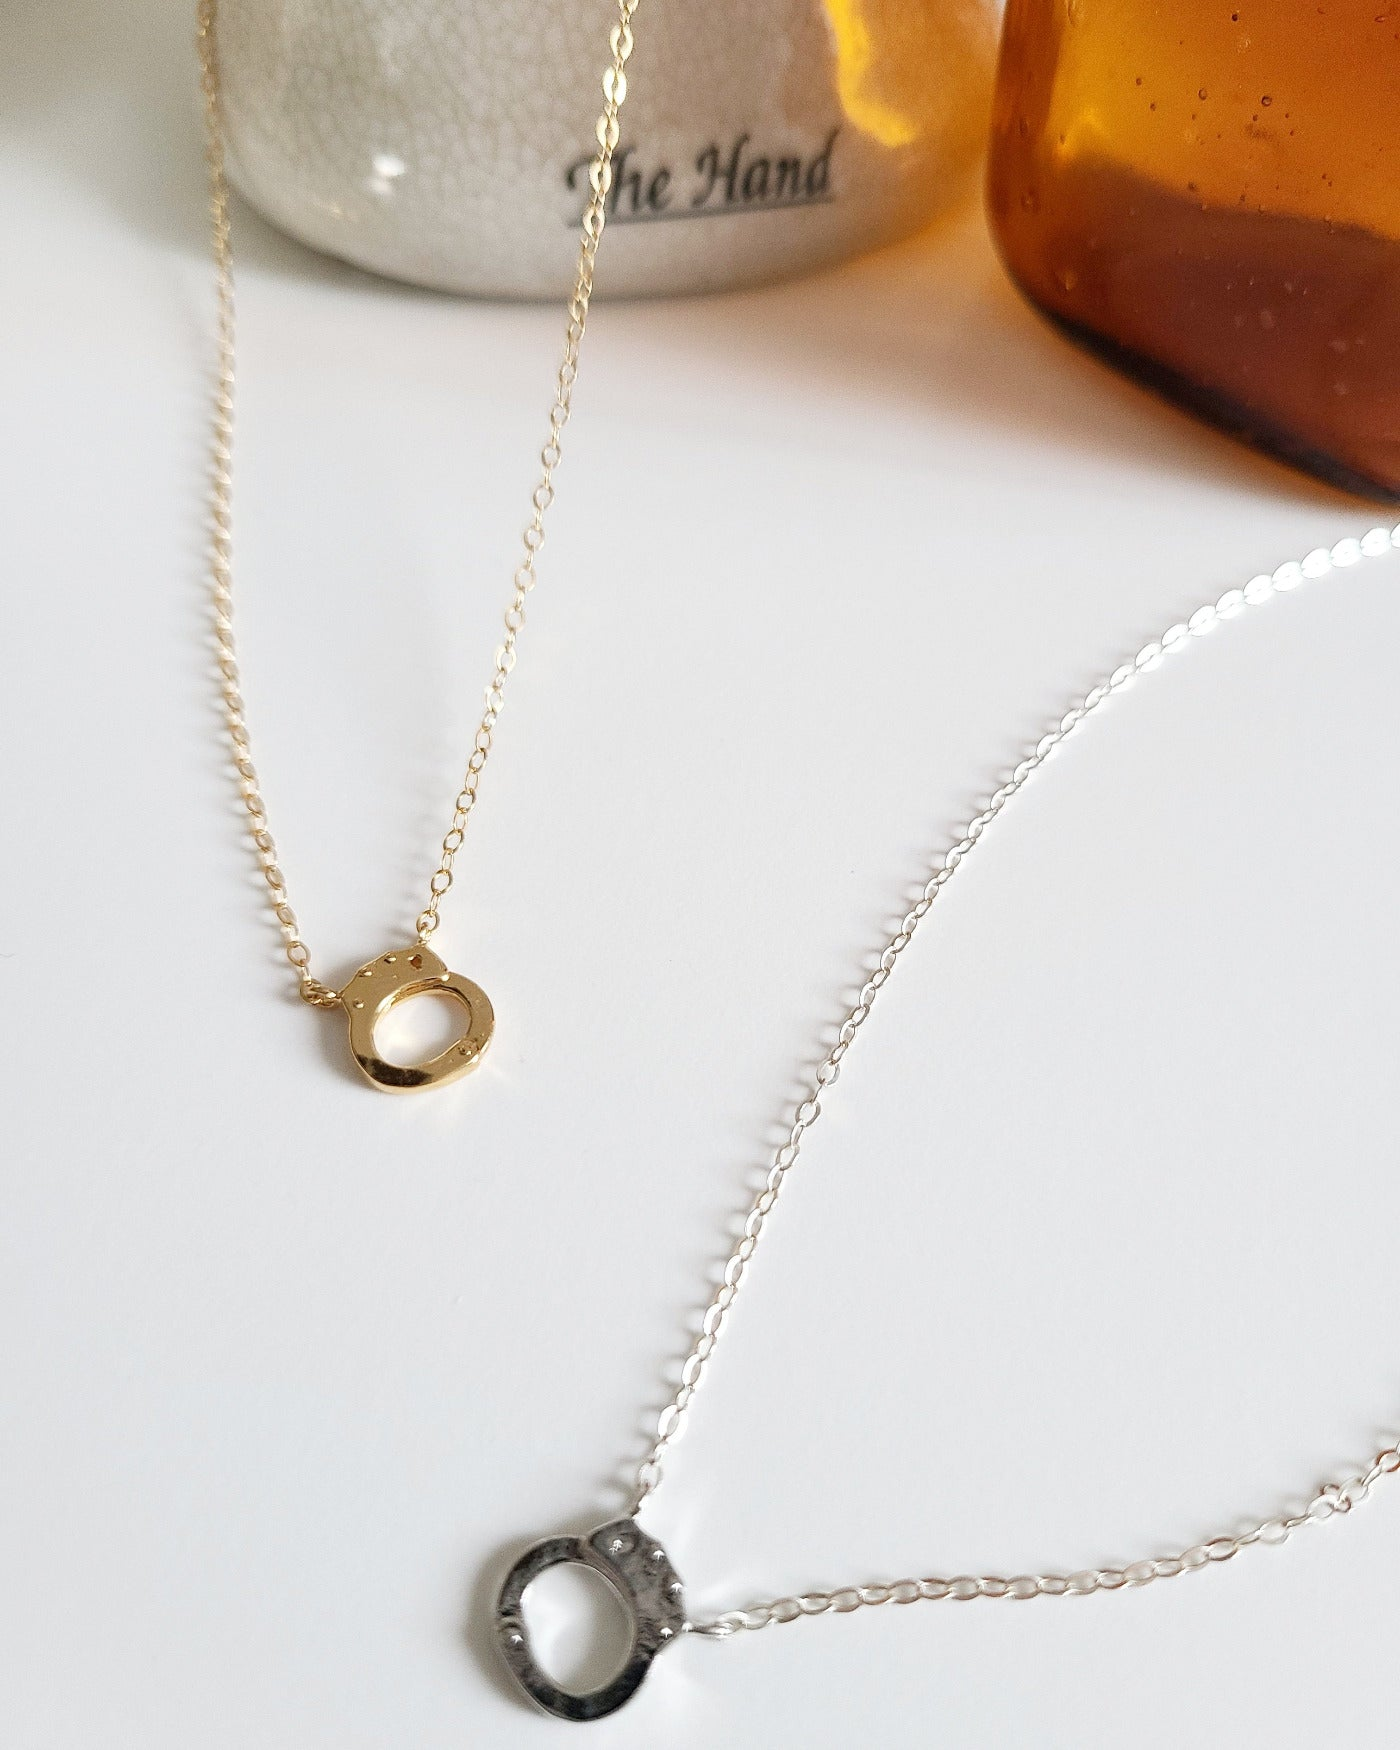 "Your Taking Control Necklace is available in both 18"" gold vermeil or 18"" sterling silver dainty chain with a tiny lobster clasp closure. Features a small 7cm handcuff charm."